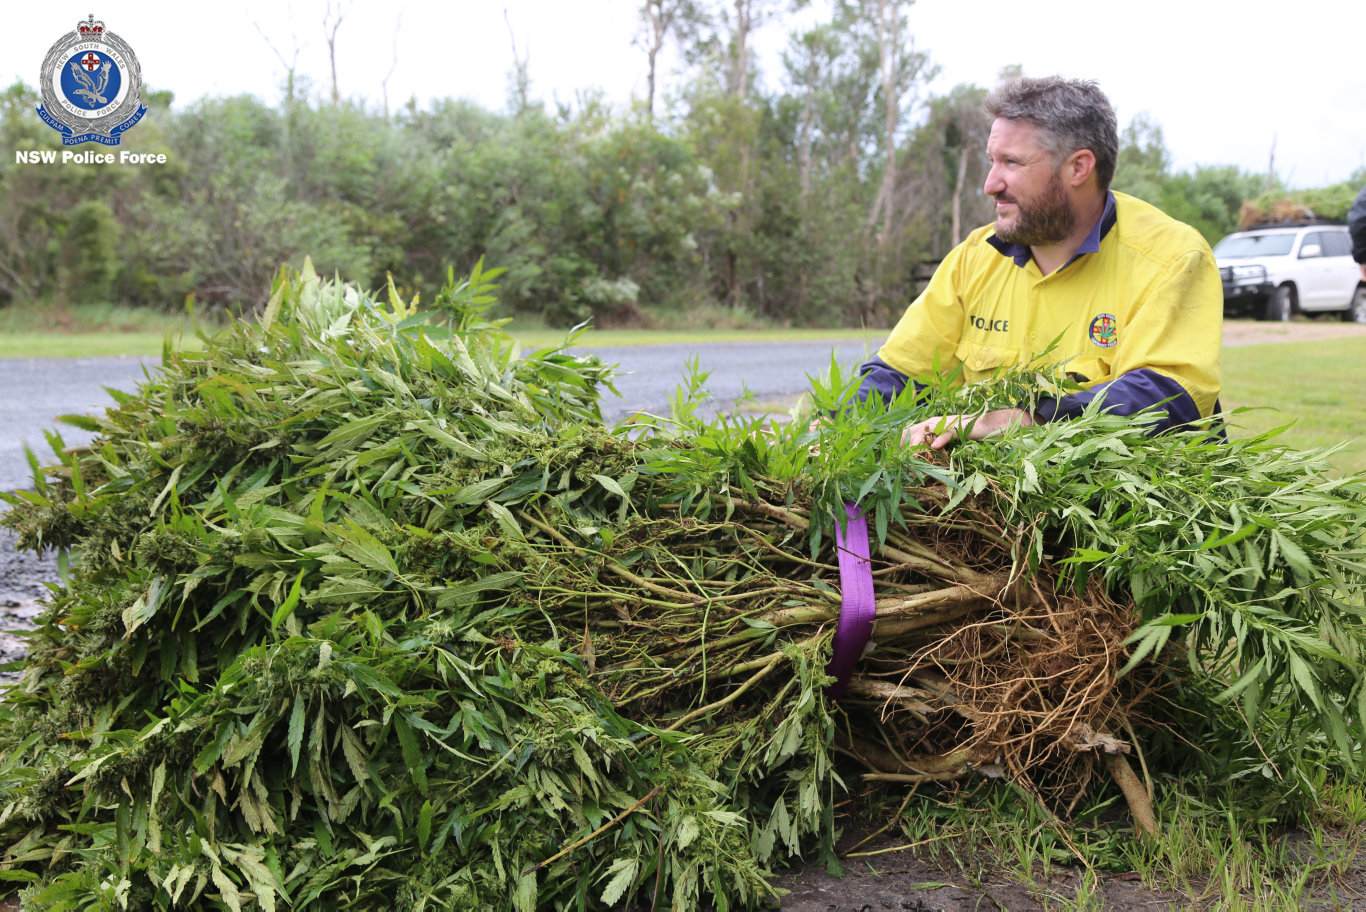 Nearly $12 million worth of cannabis has been seized as part of this year's Cannabis Eradication Program (CEP) in the state's north.